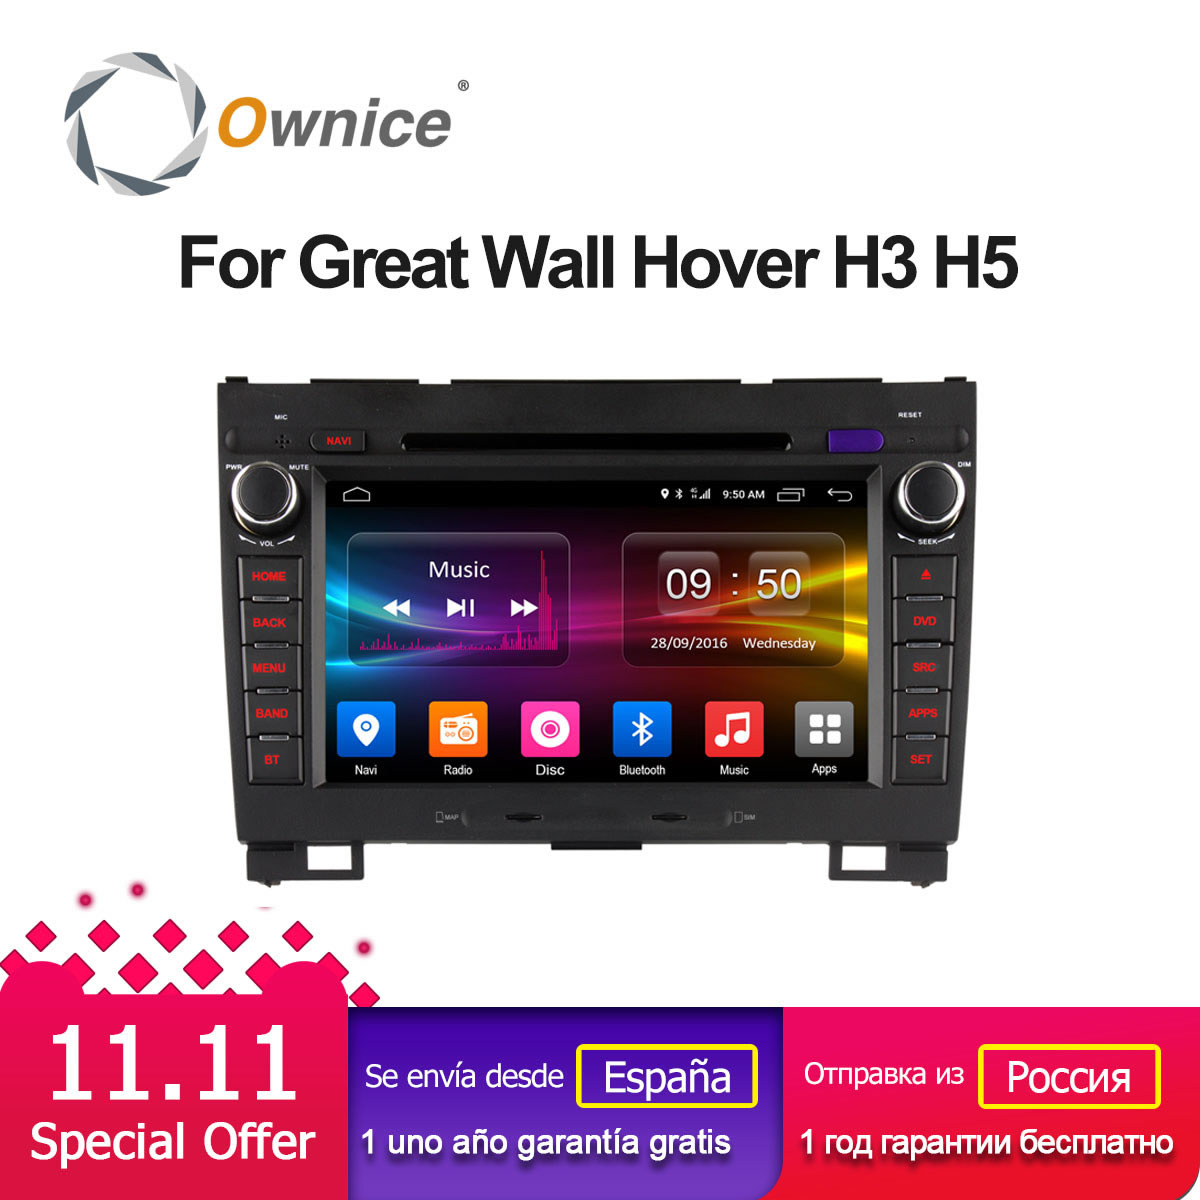 Ownice 8 C500 Android 6.0 Octa Núcleo DVD PLAYER DO CARRO GPS Navi Para Great Wall Hover H3 H5 wifi 4g 2 rádio gb RAM gb ROM 32 4g LTE